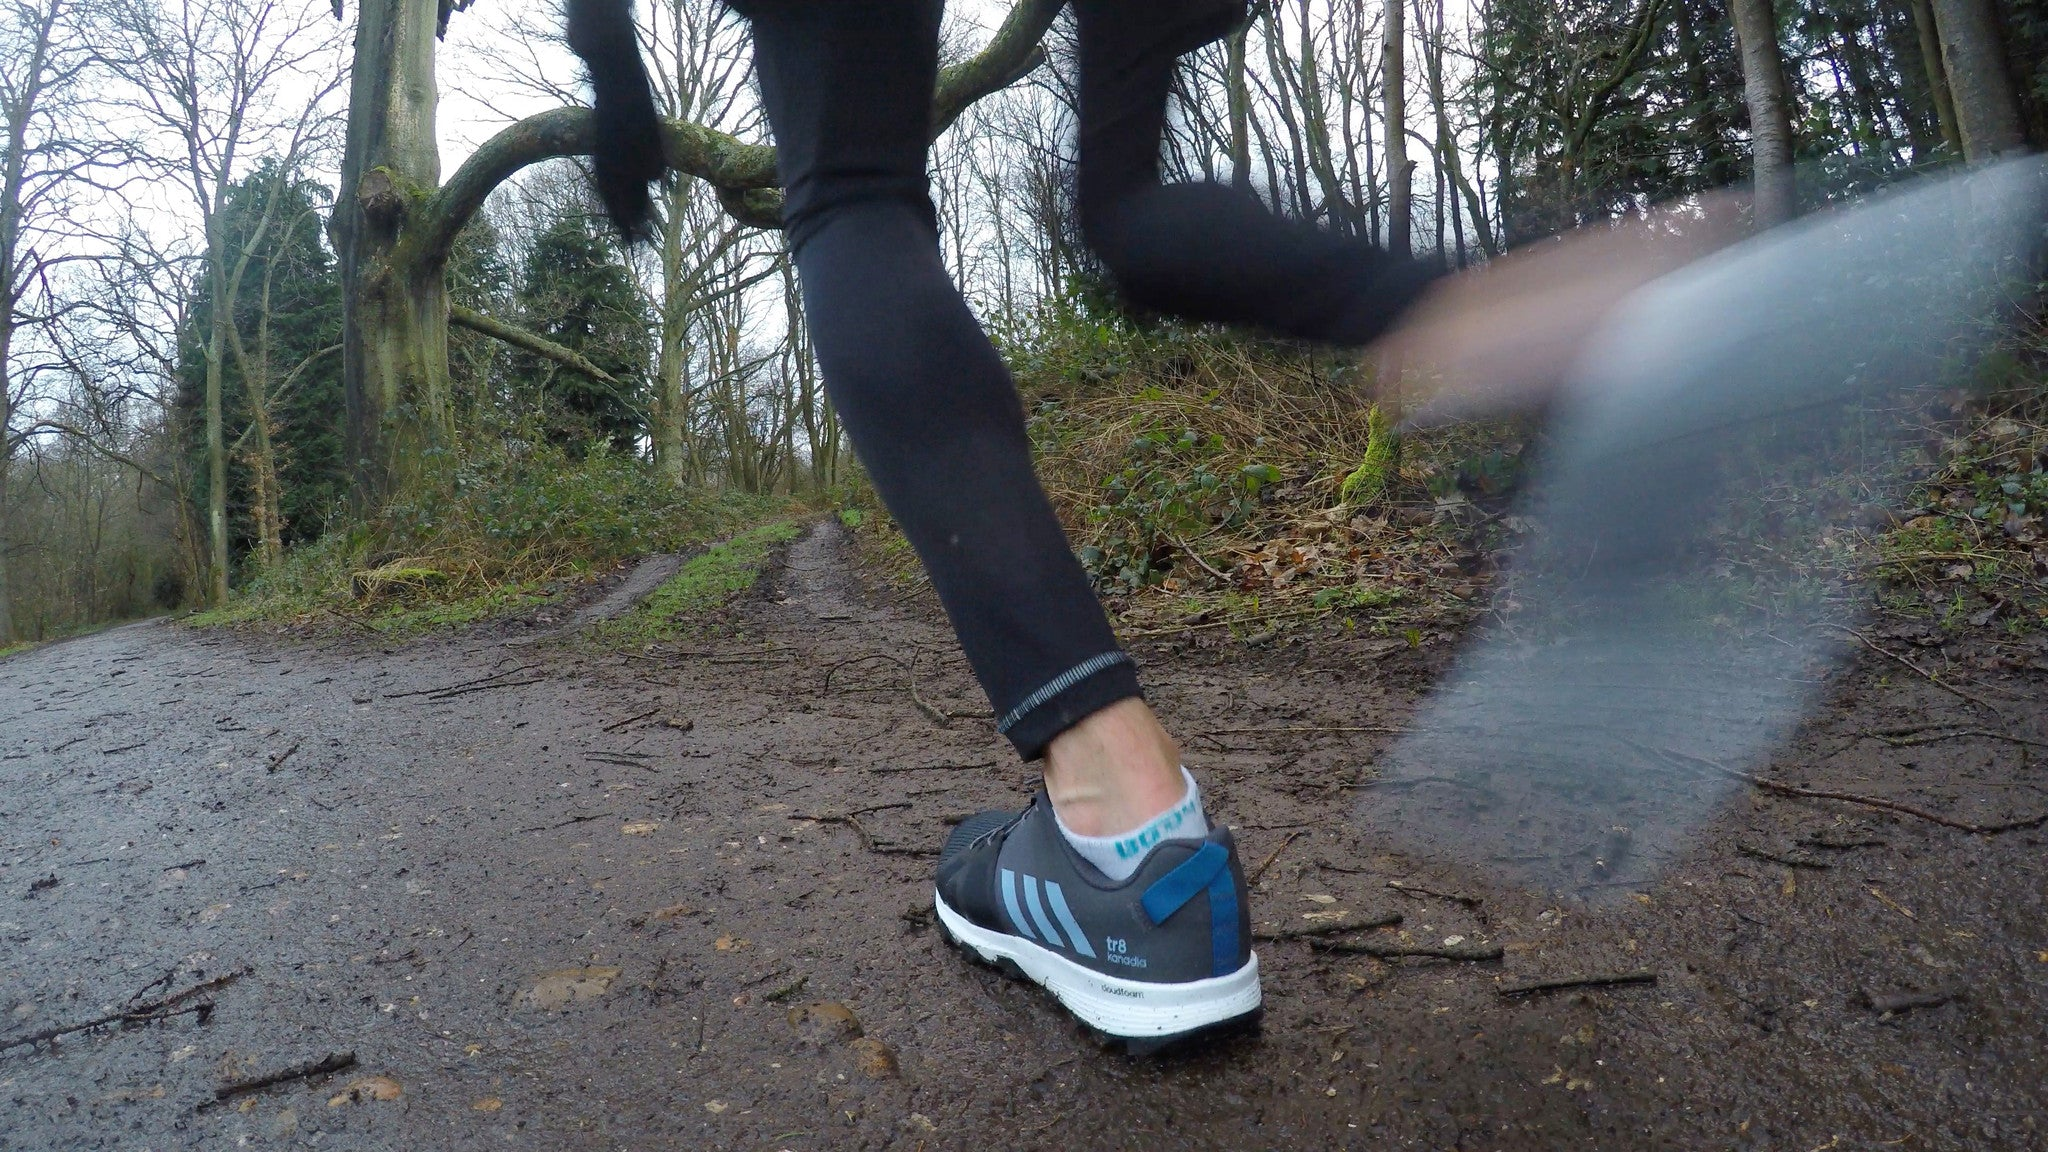 Adidas Adizero Adios 3 Running Shoes Review – Sundried